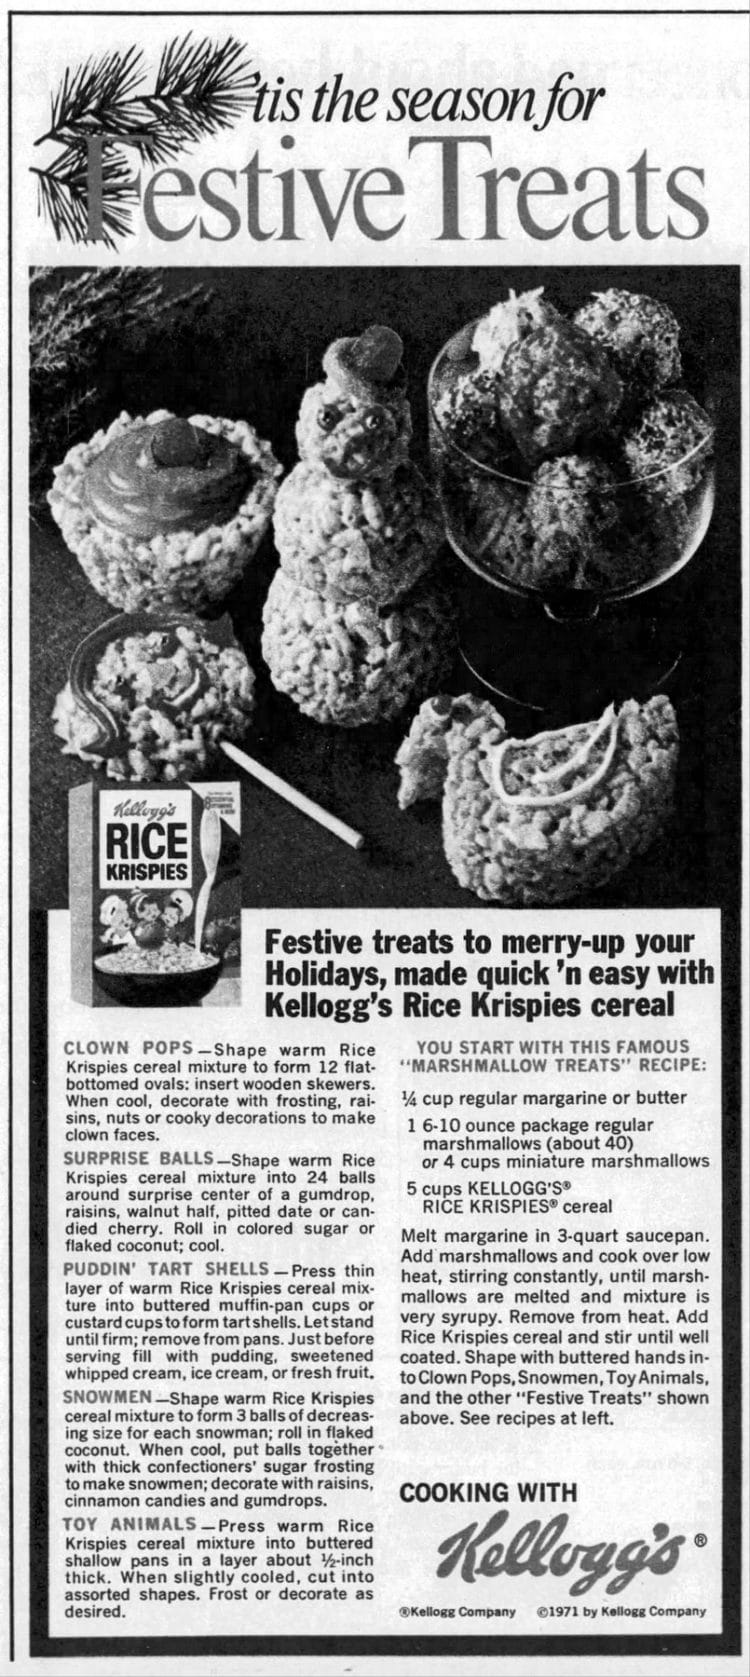 Christmas 'tis the season for Merry Rice Krispies Treats 1973